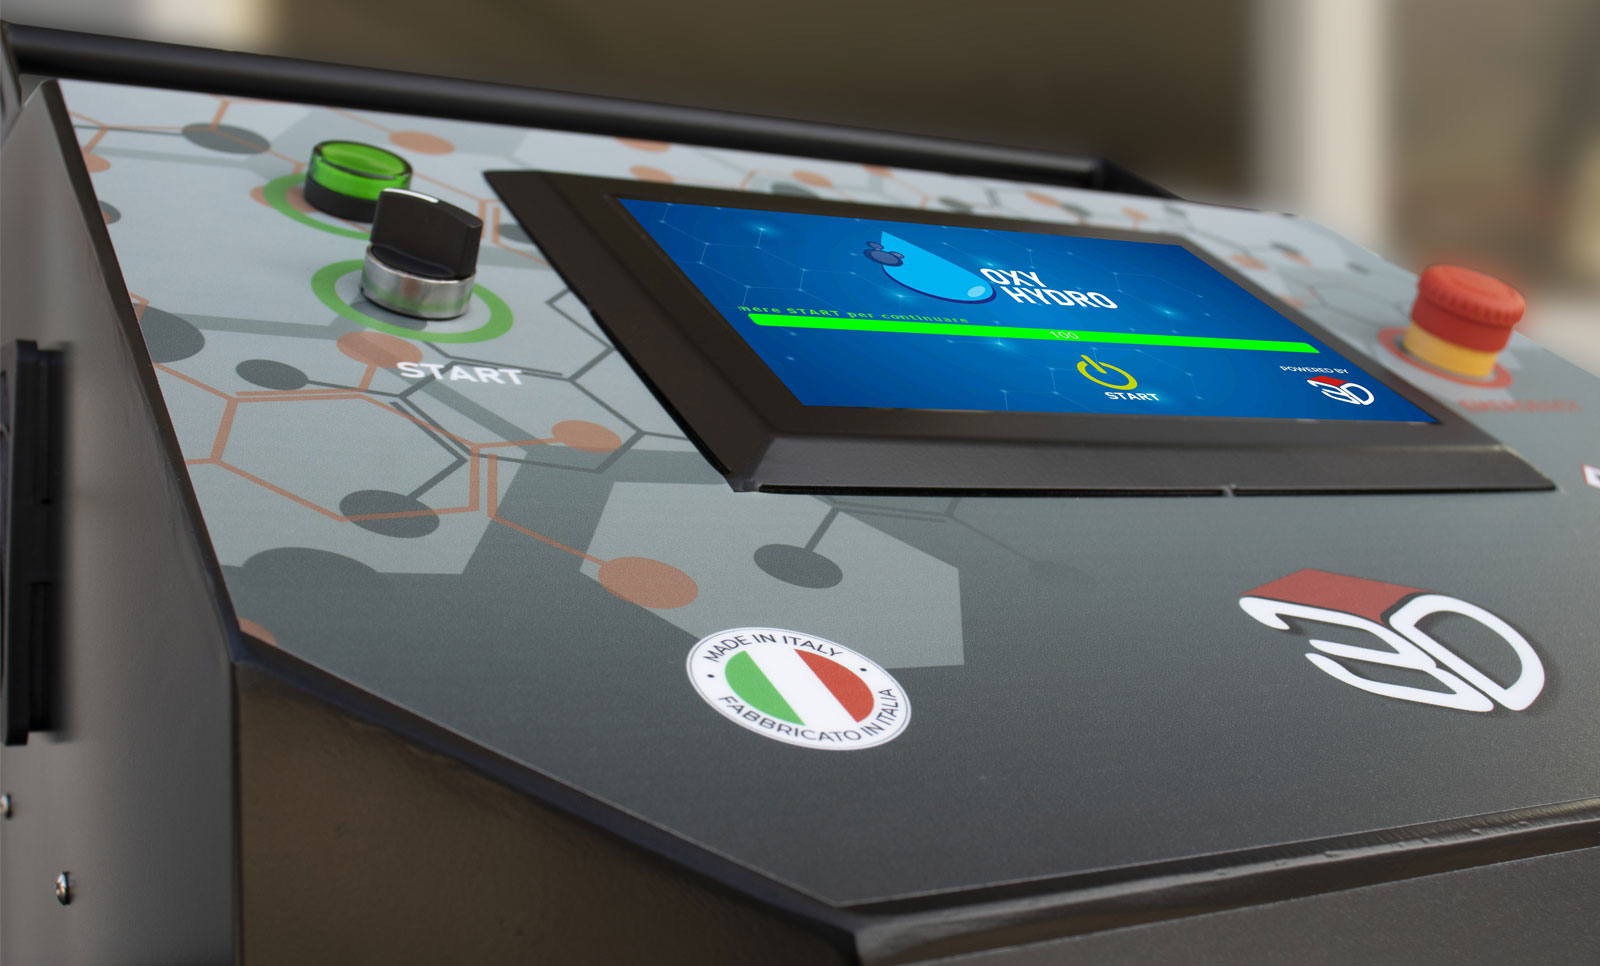 OxyHydro: Touch Screen